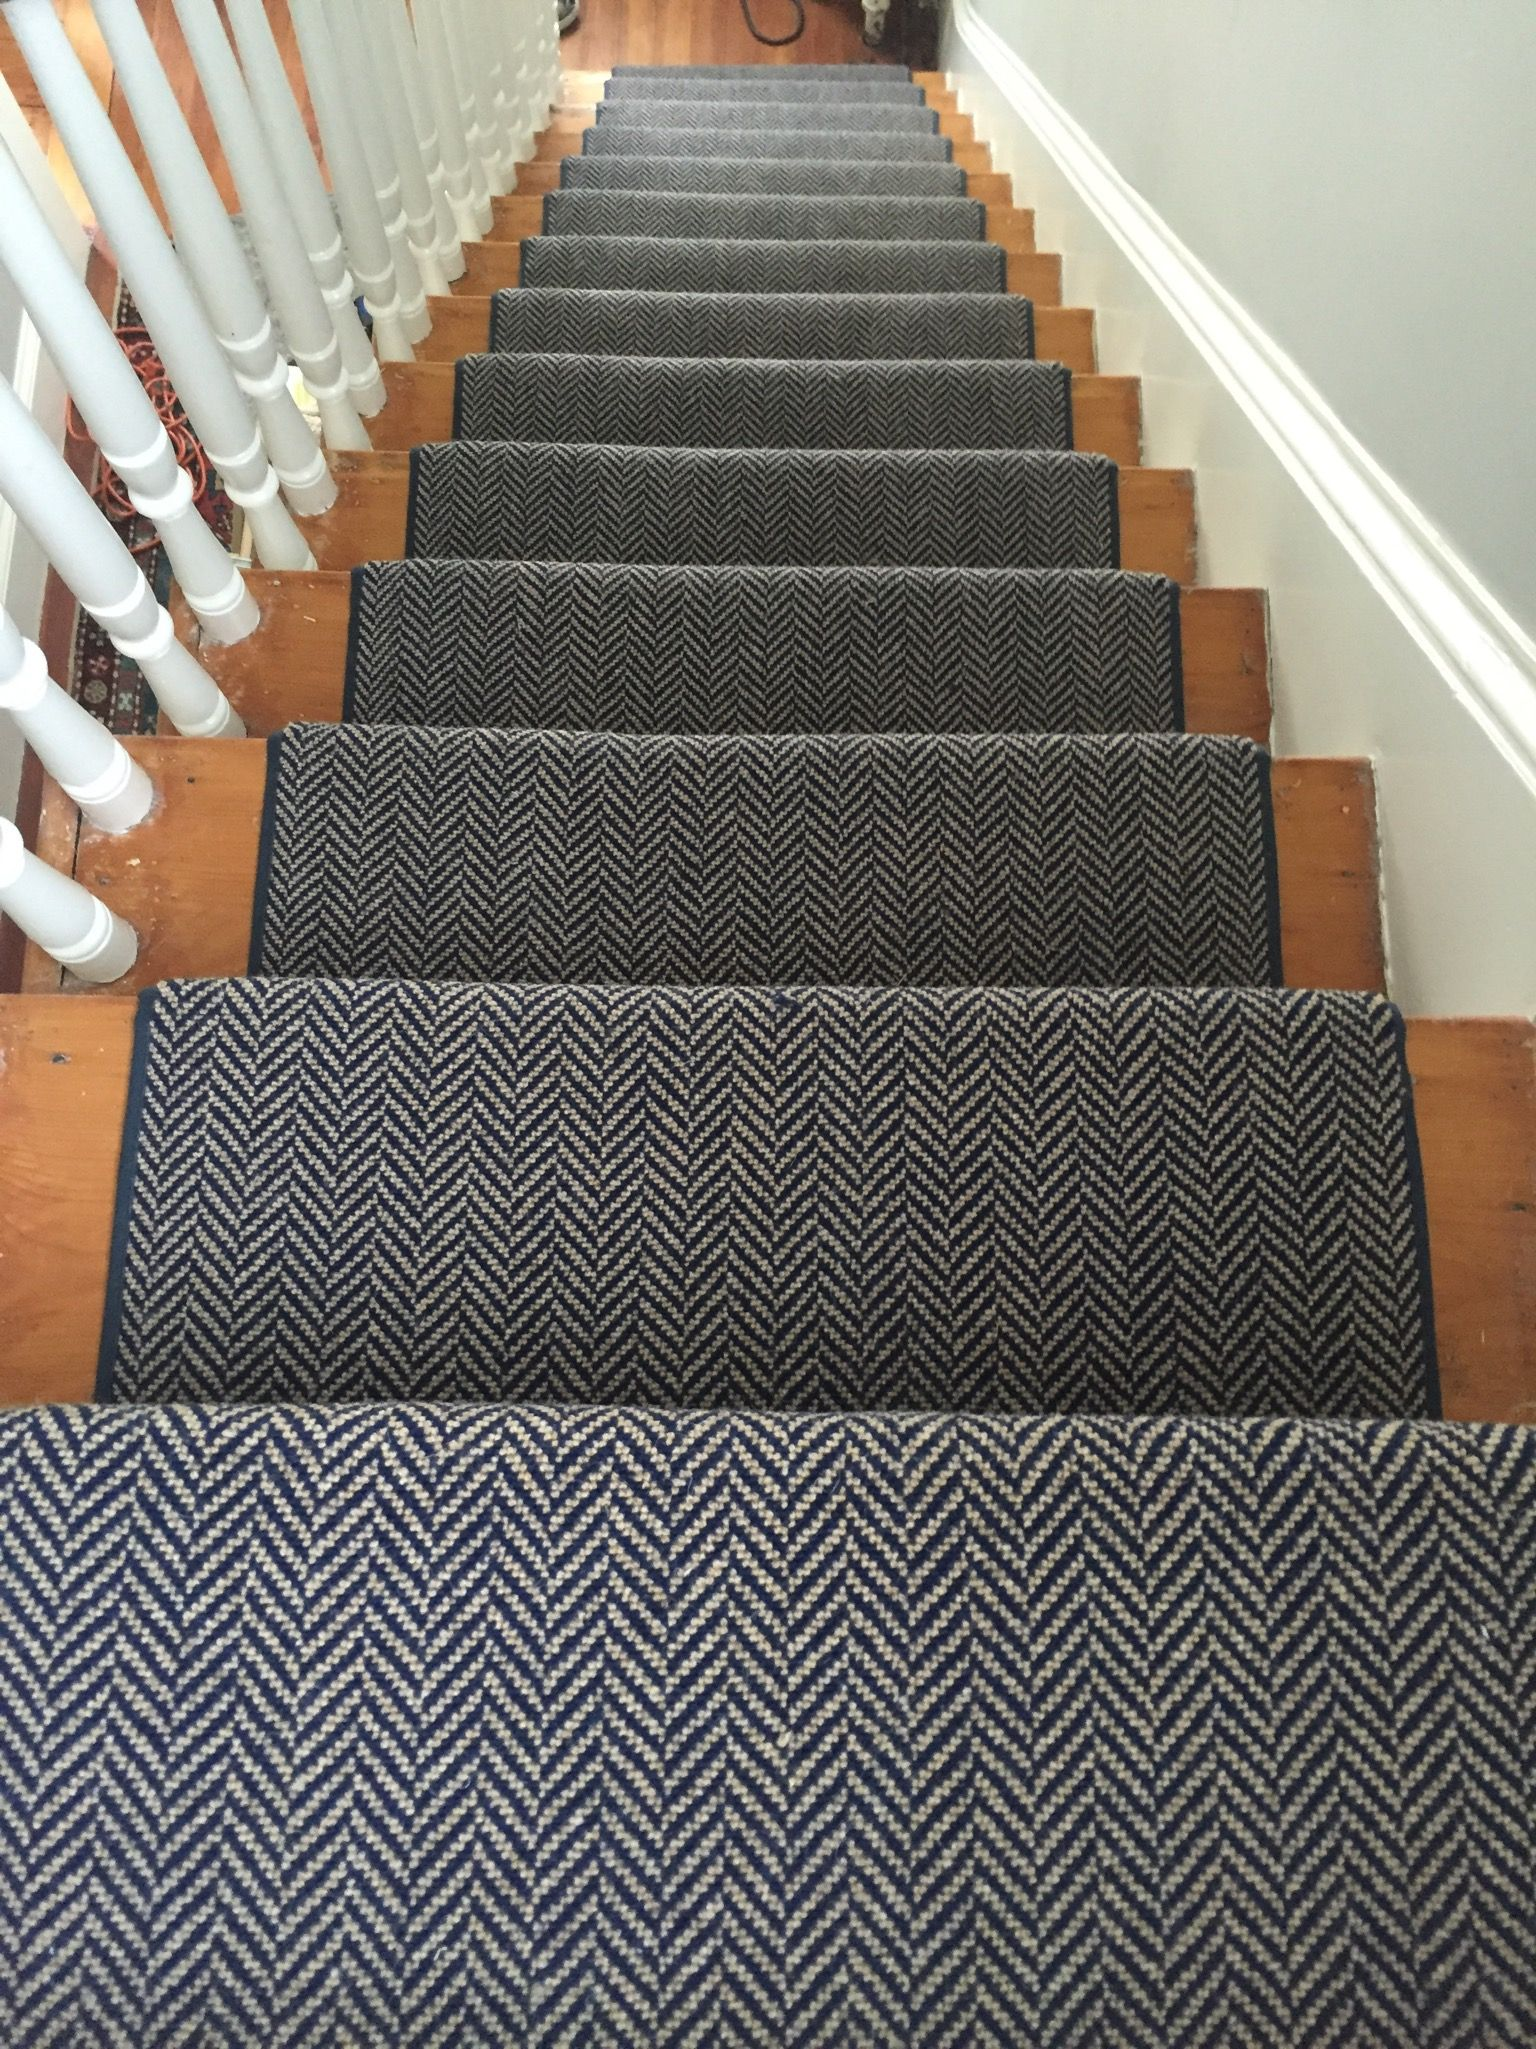 Custom Rug Fabrication In 2020 Carpet Stairs Rugs On